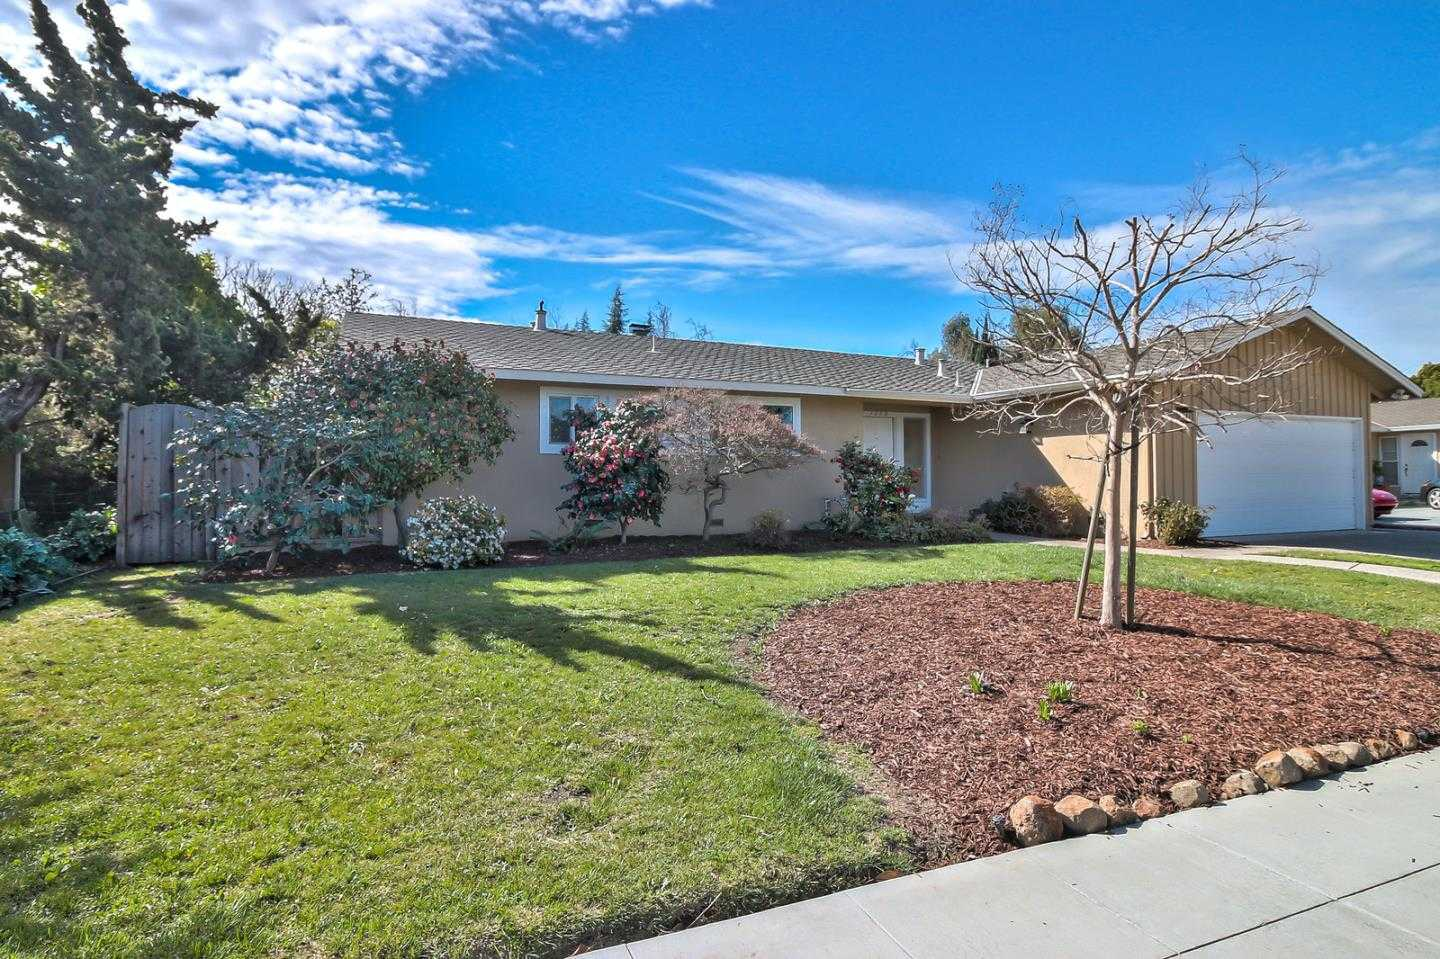 $1,888,000 - 3Br/2Ba -  for Sale in Sunnyvale